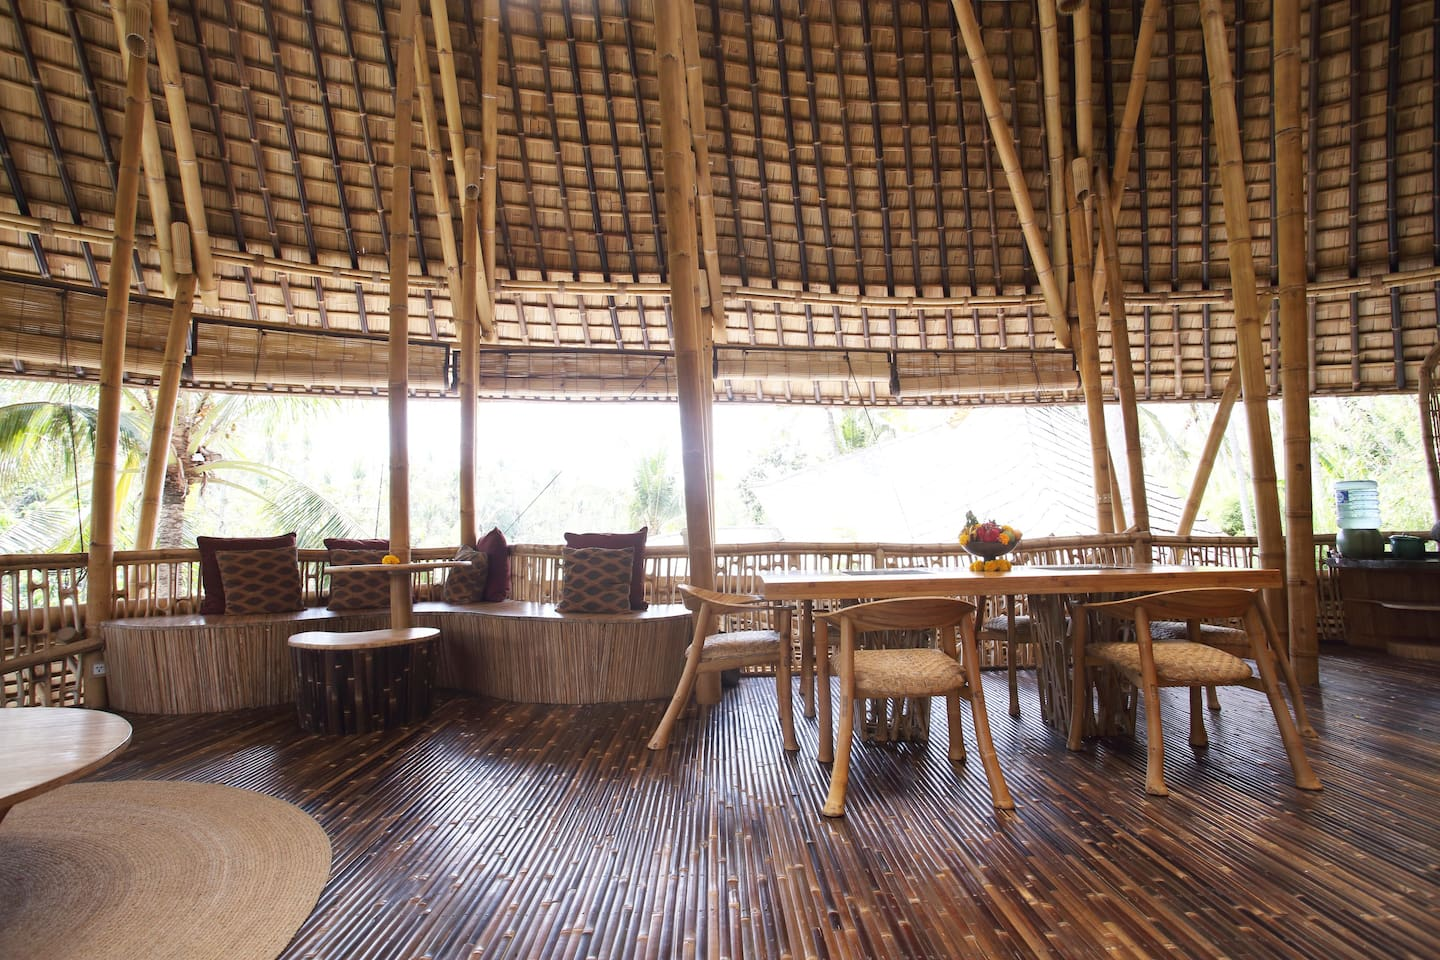 Temple View House, made entirely from bamboo